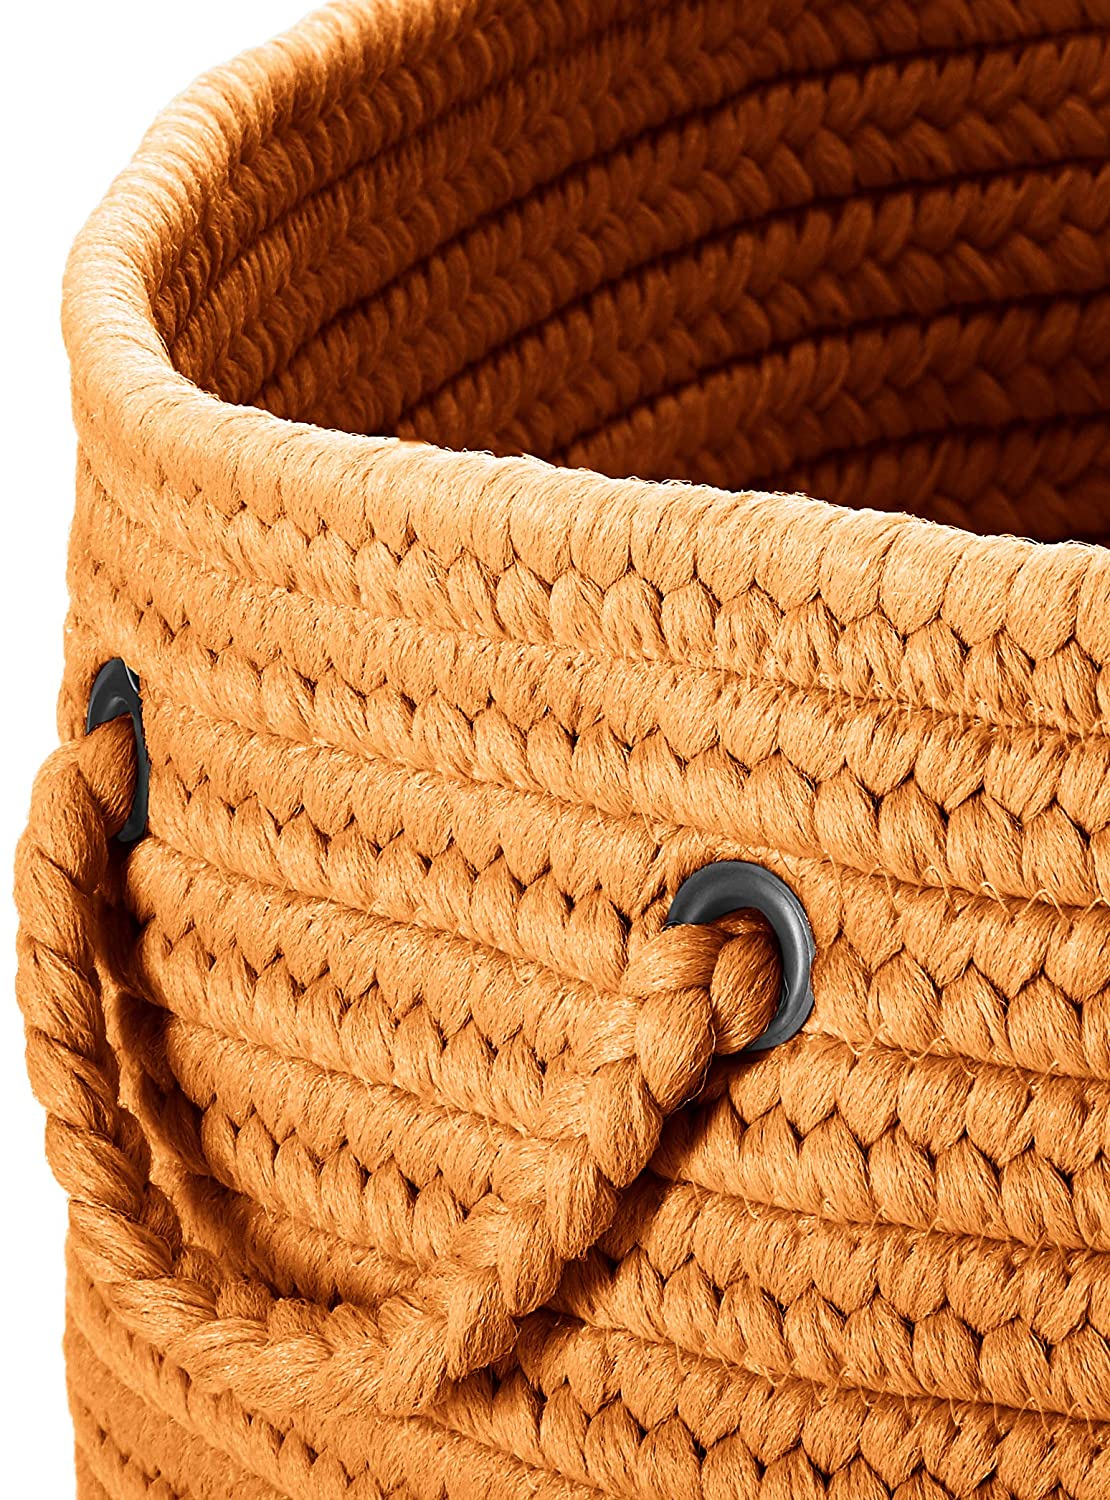 White Colonial Mills BR10 18 by 18 by 12-Inch Boca Raton Solid Storage Basket